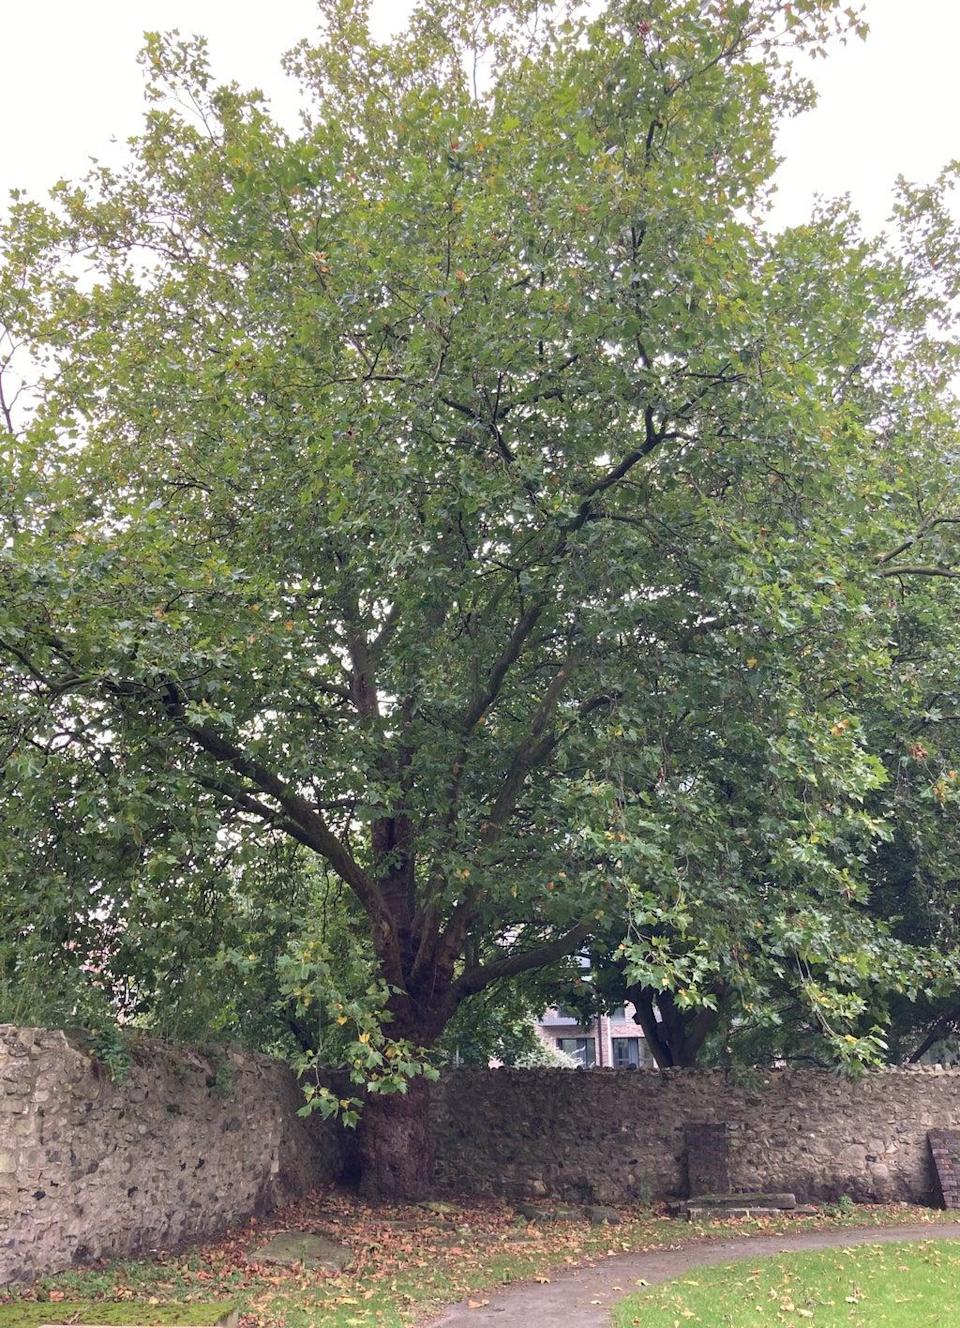 A large maple tree in a corner of the walled cemetery in St Margaret's churchyard in Barking, east London, where the bodies of Gabriel Kovari, 22, and Daniel Whitworth, 21, were found dead by the same dog walker three weeks apart in 2014. (Emily Pennink/PA) (PA Wire)